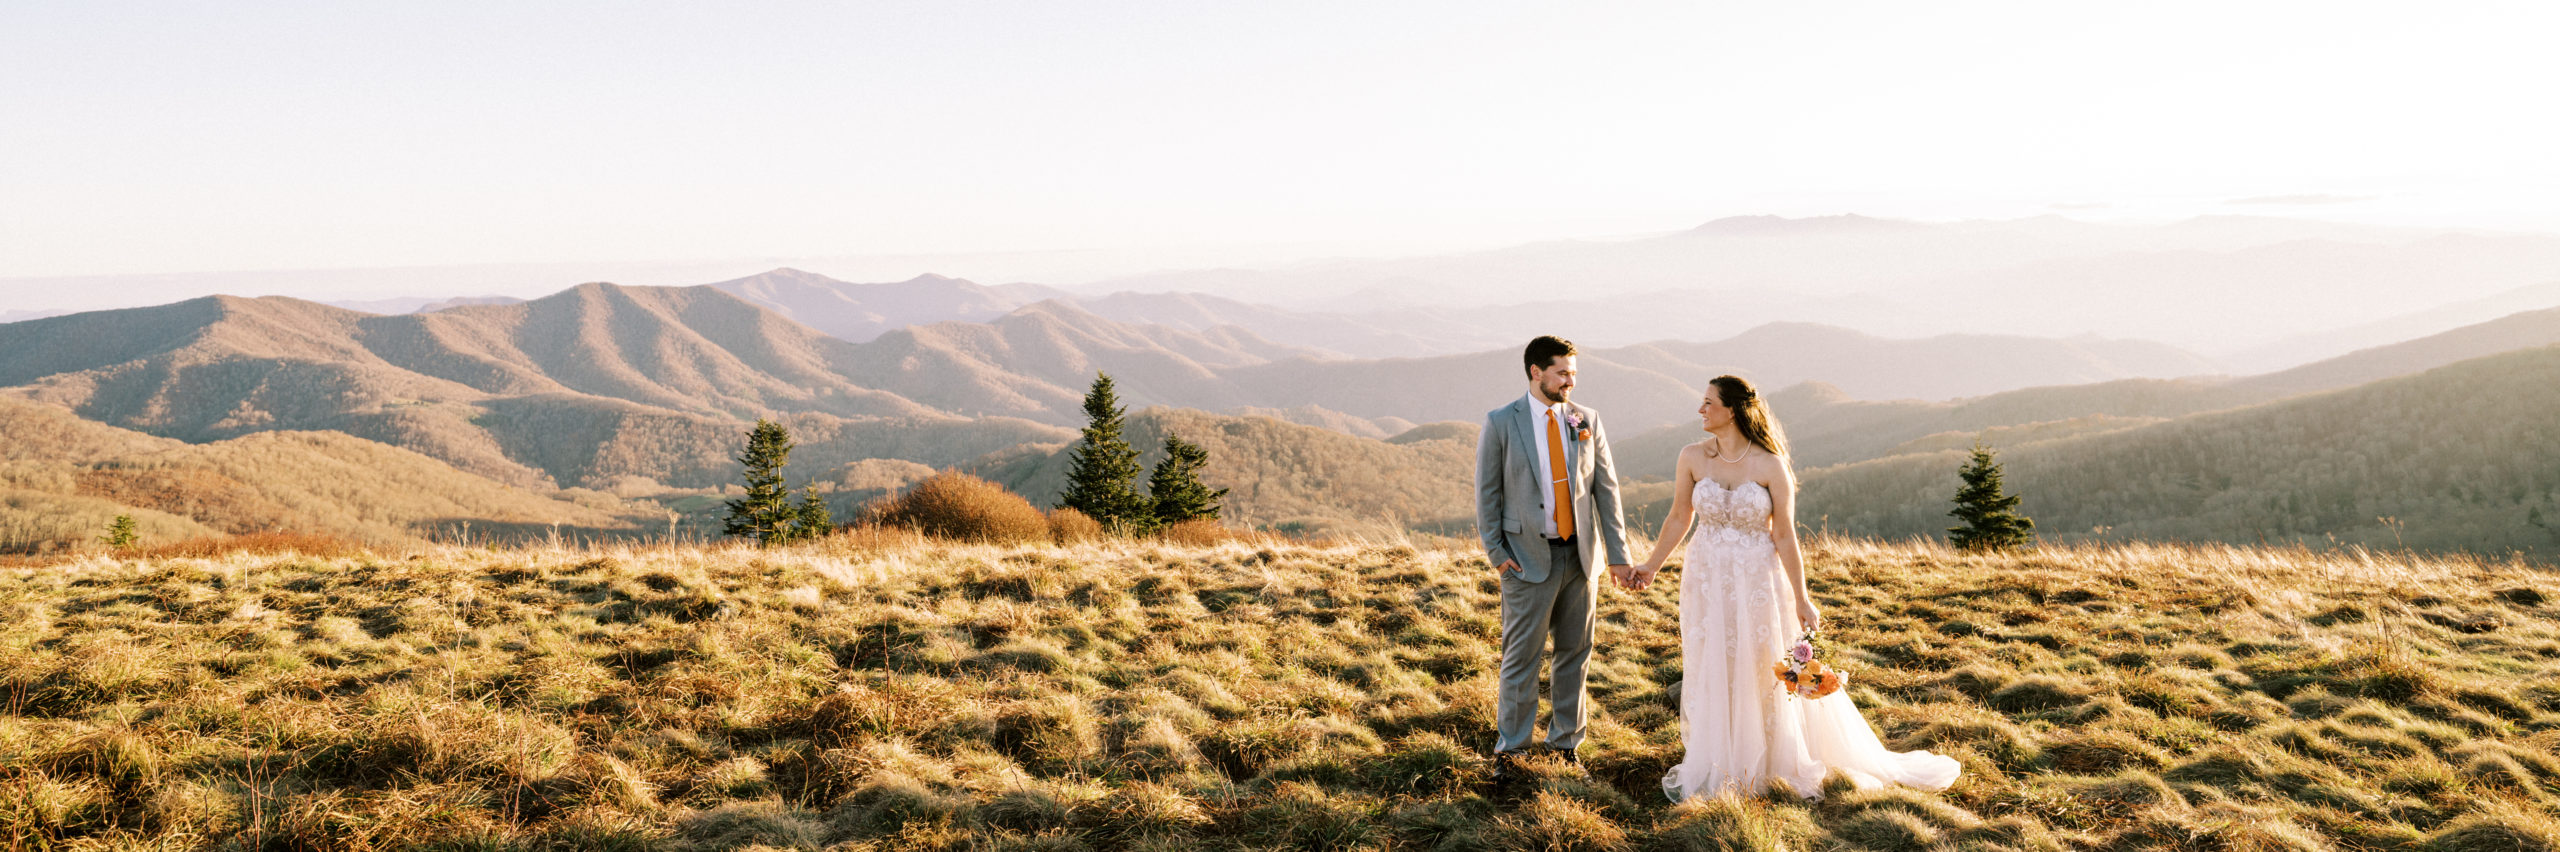 Couple holds hands with beautiful mountain views in the background